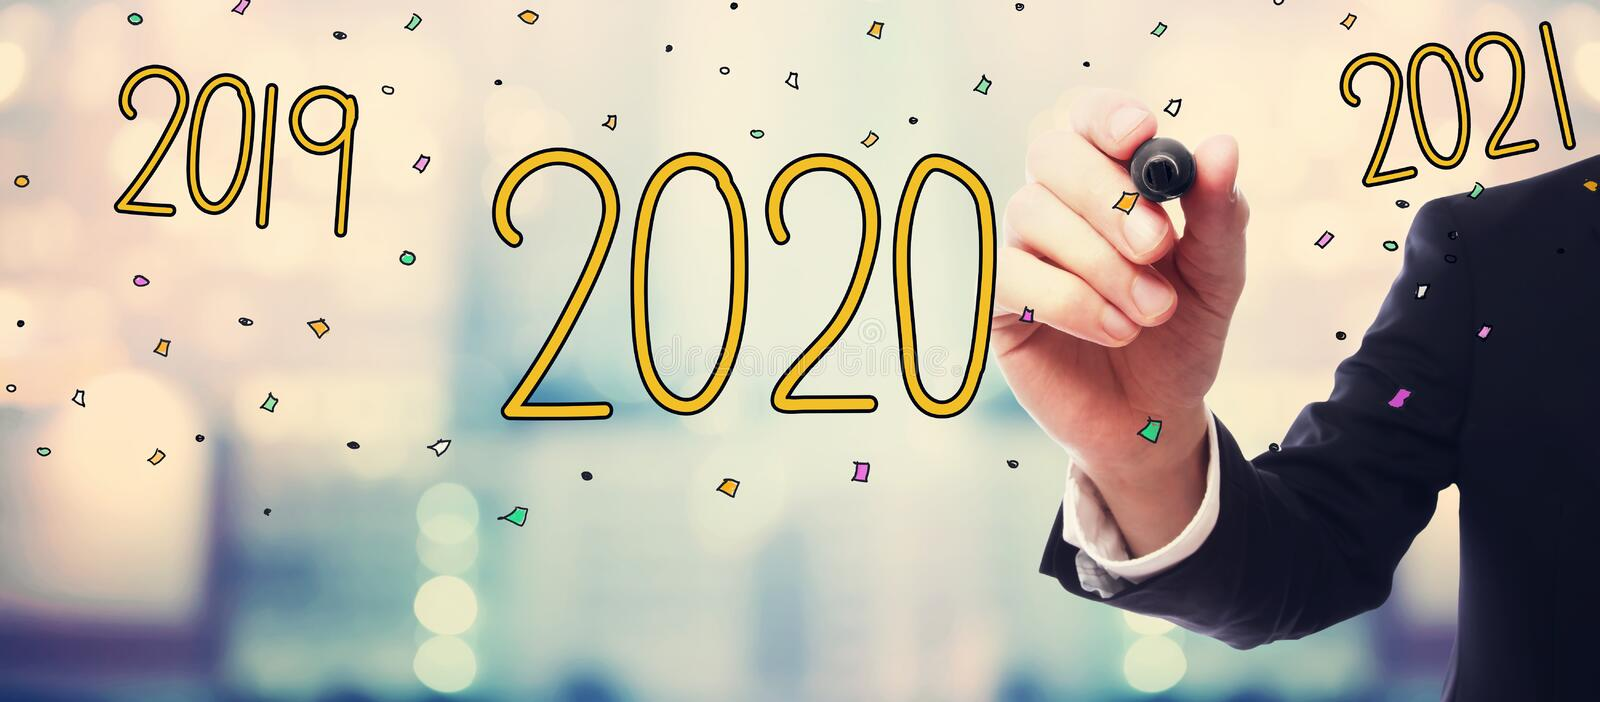 2020 with businessman on abstract background. 2020 concept with businessman on blurred abstract background stock photos